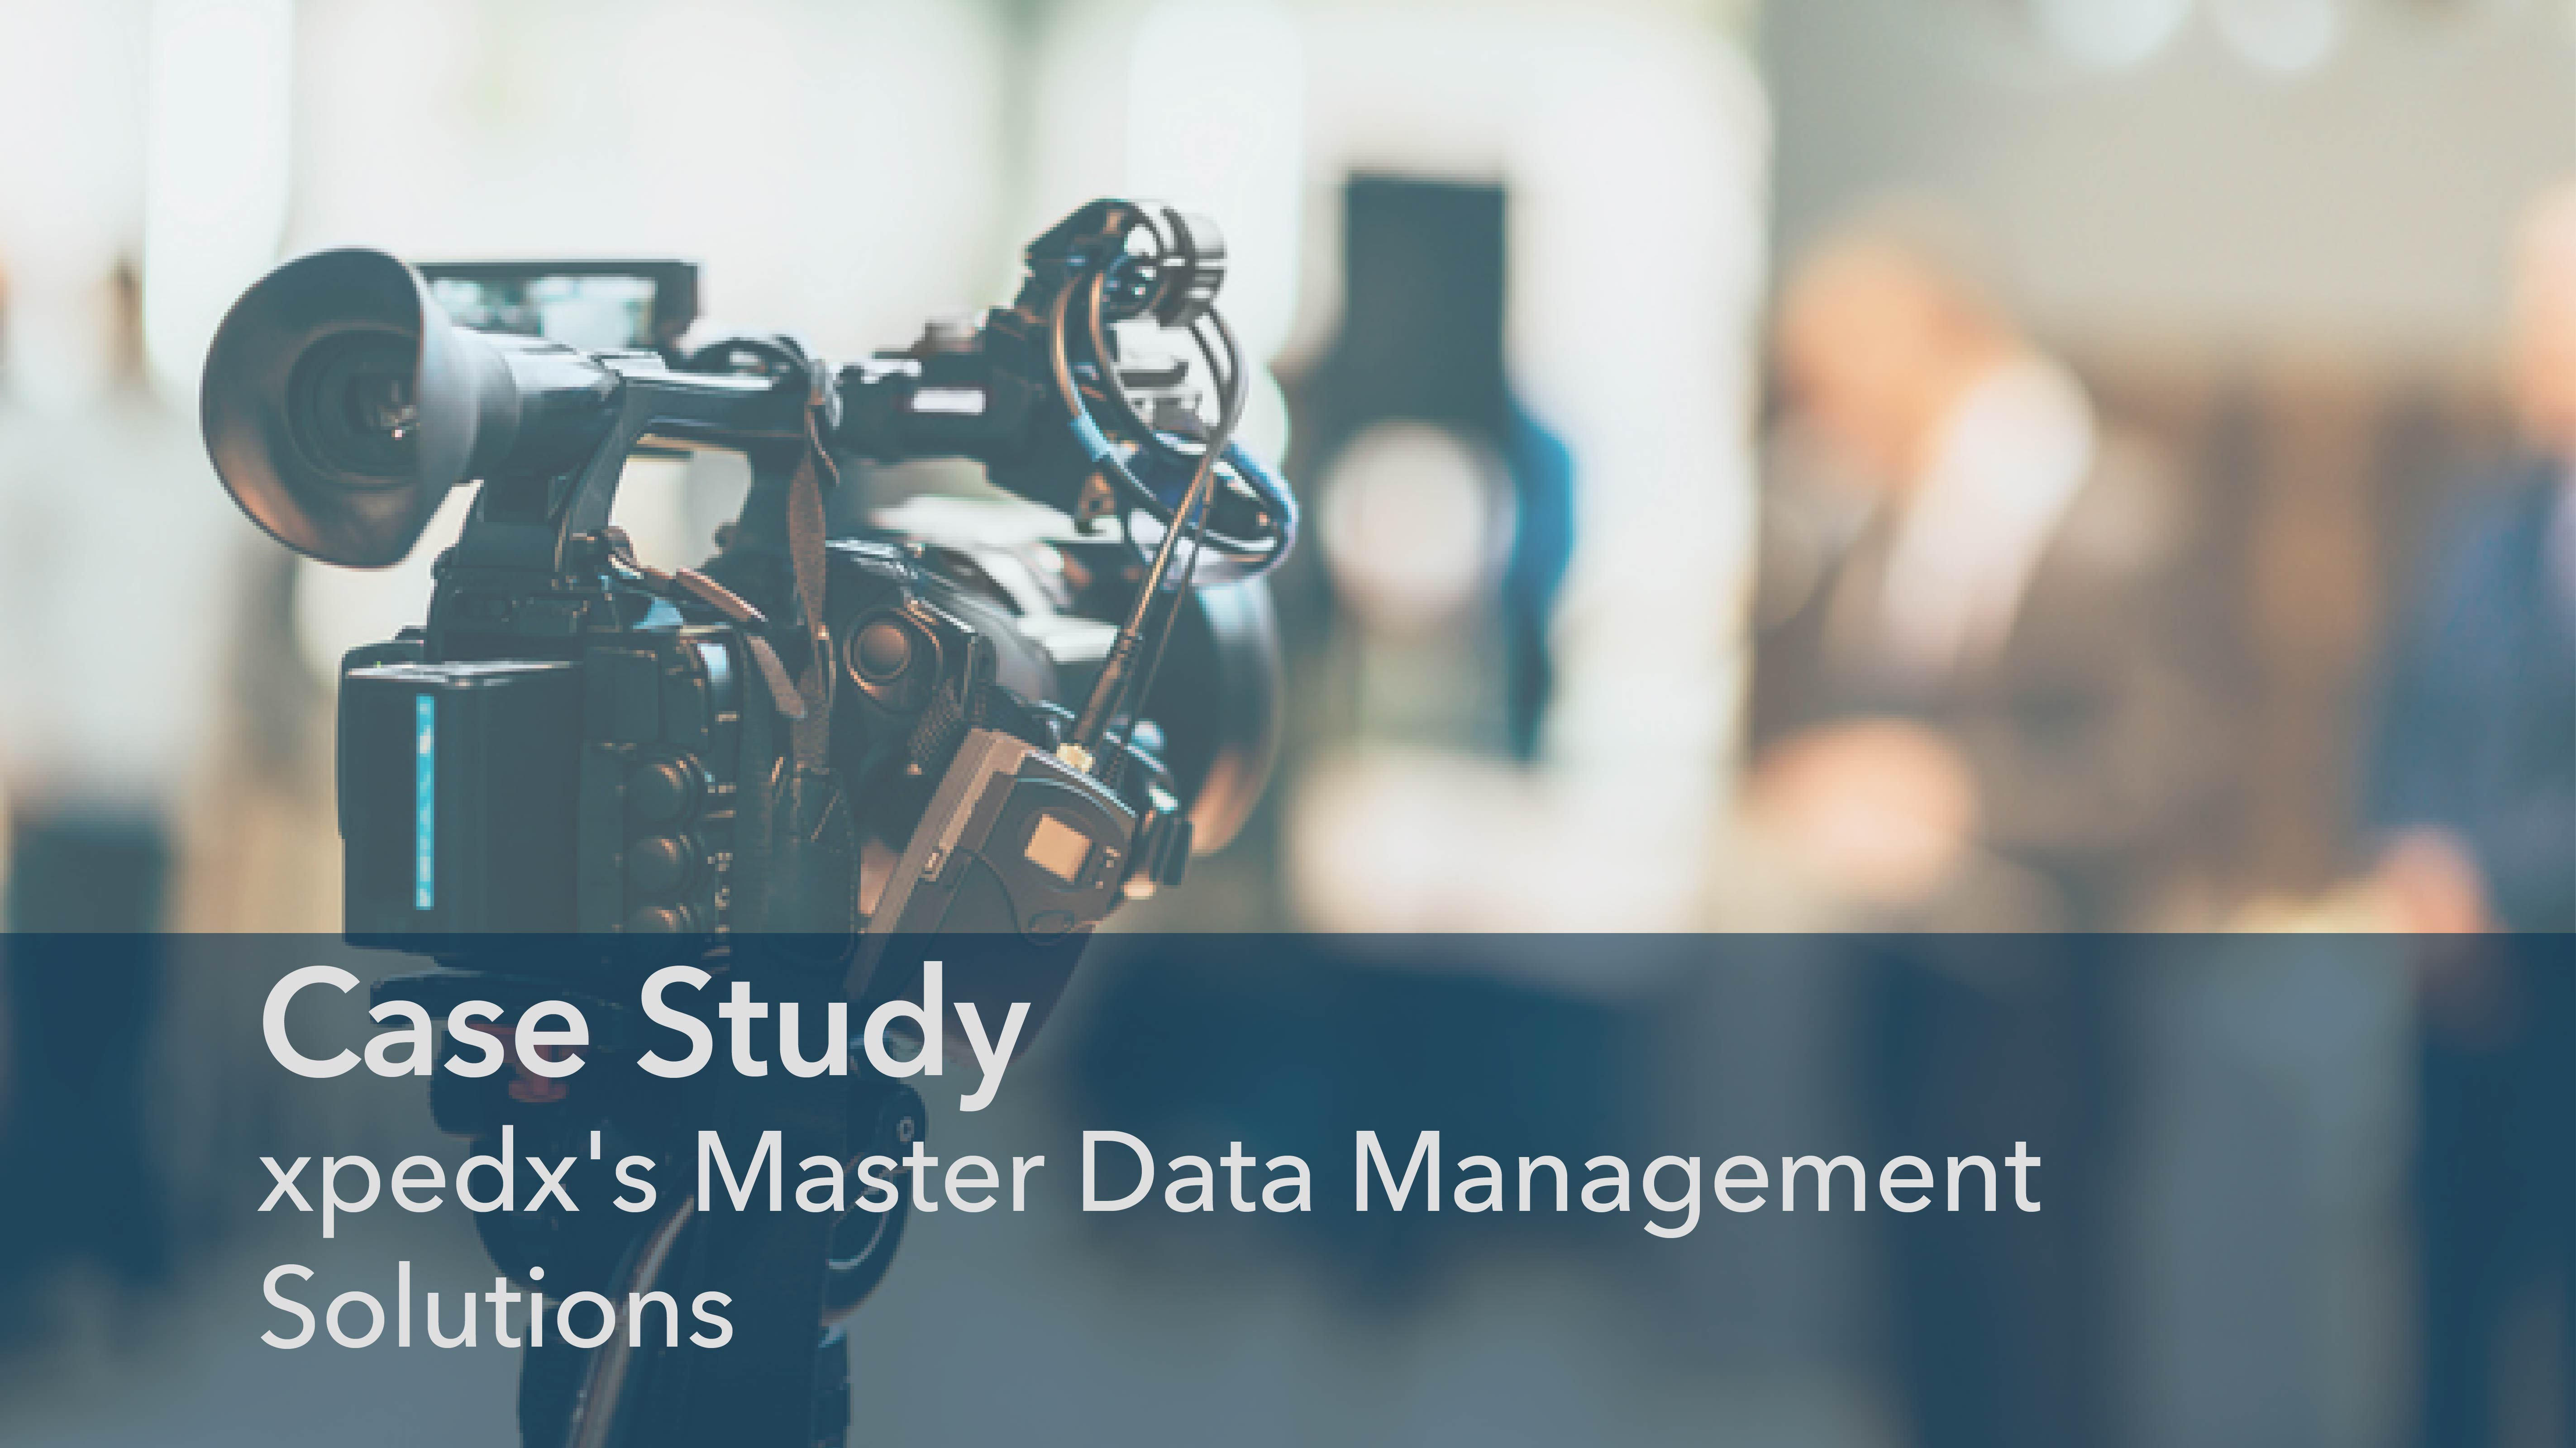 Case Study: xpedx's Master Data Management Story